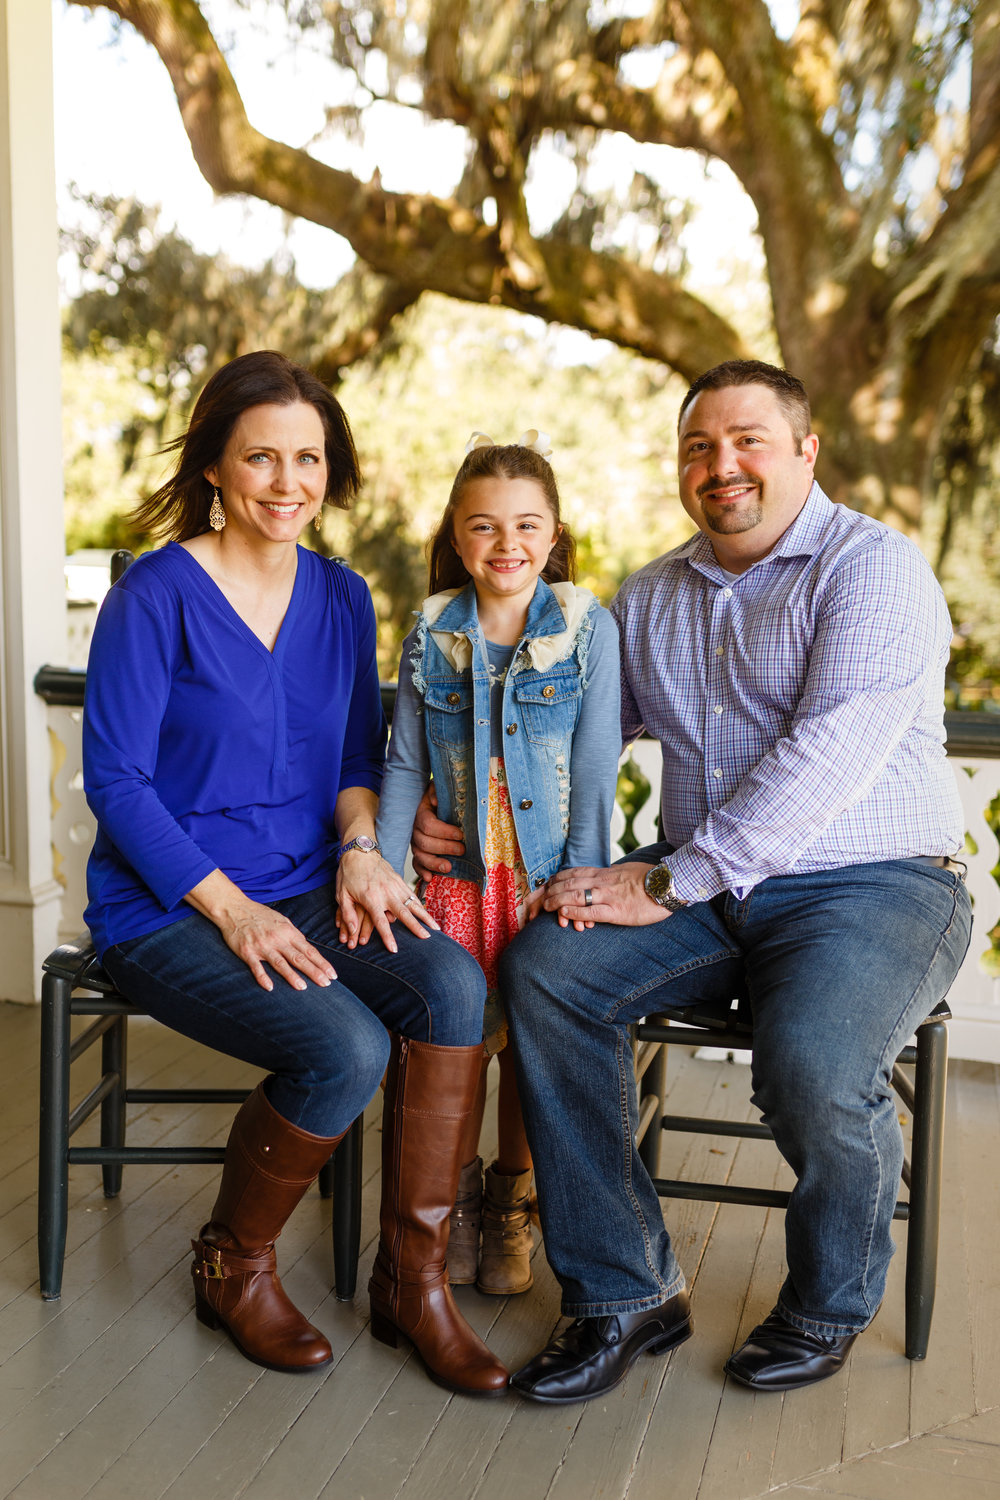 Youngsville-lafayette-portrait-family-wedding-photographer-8928.jpg